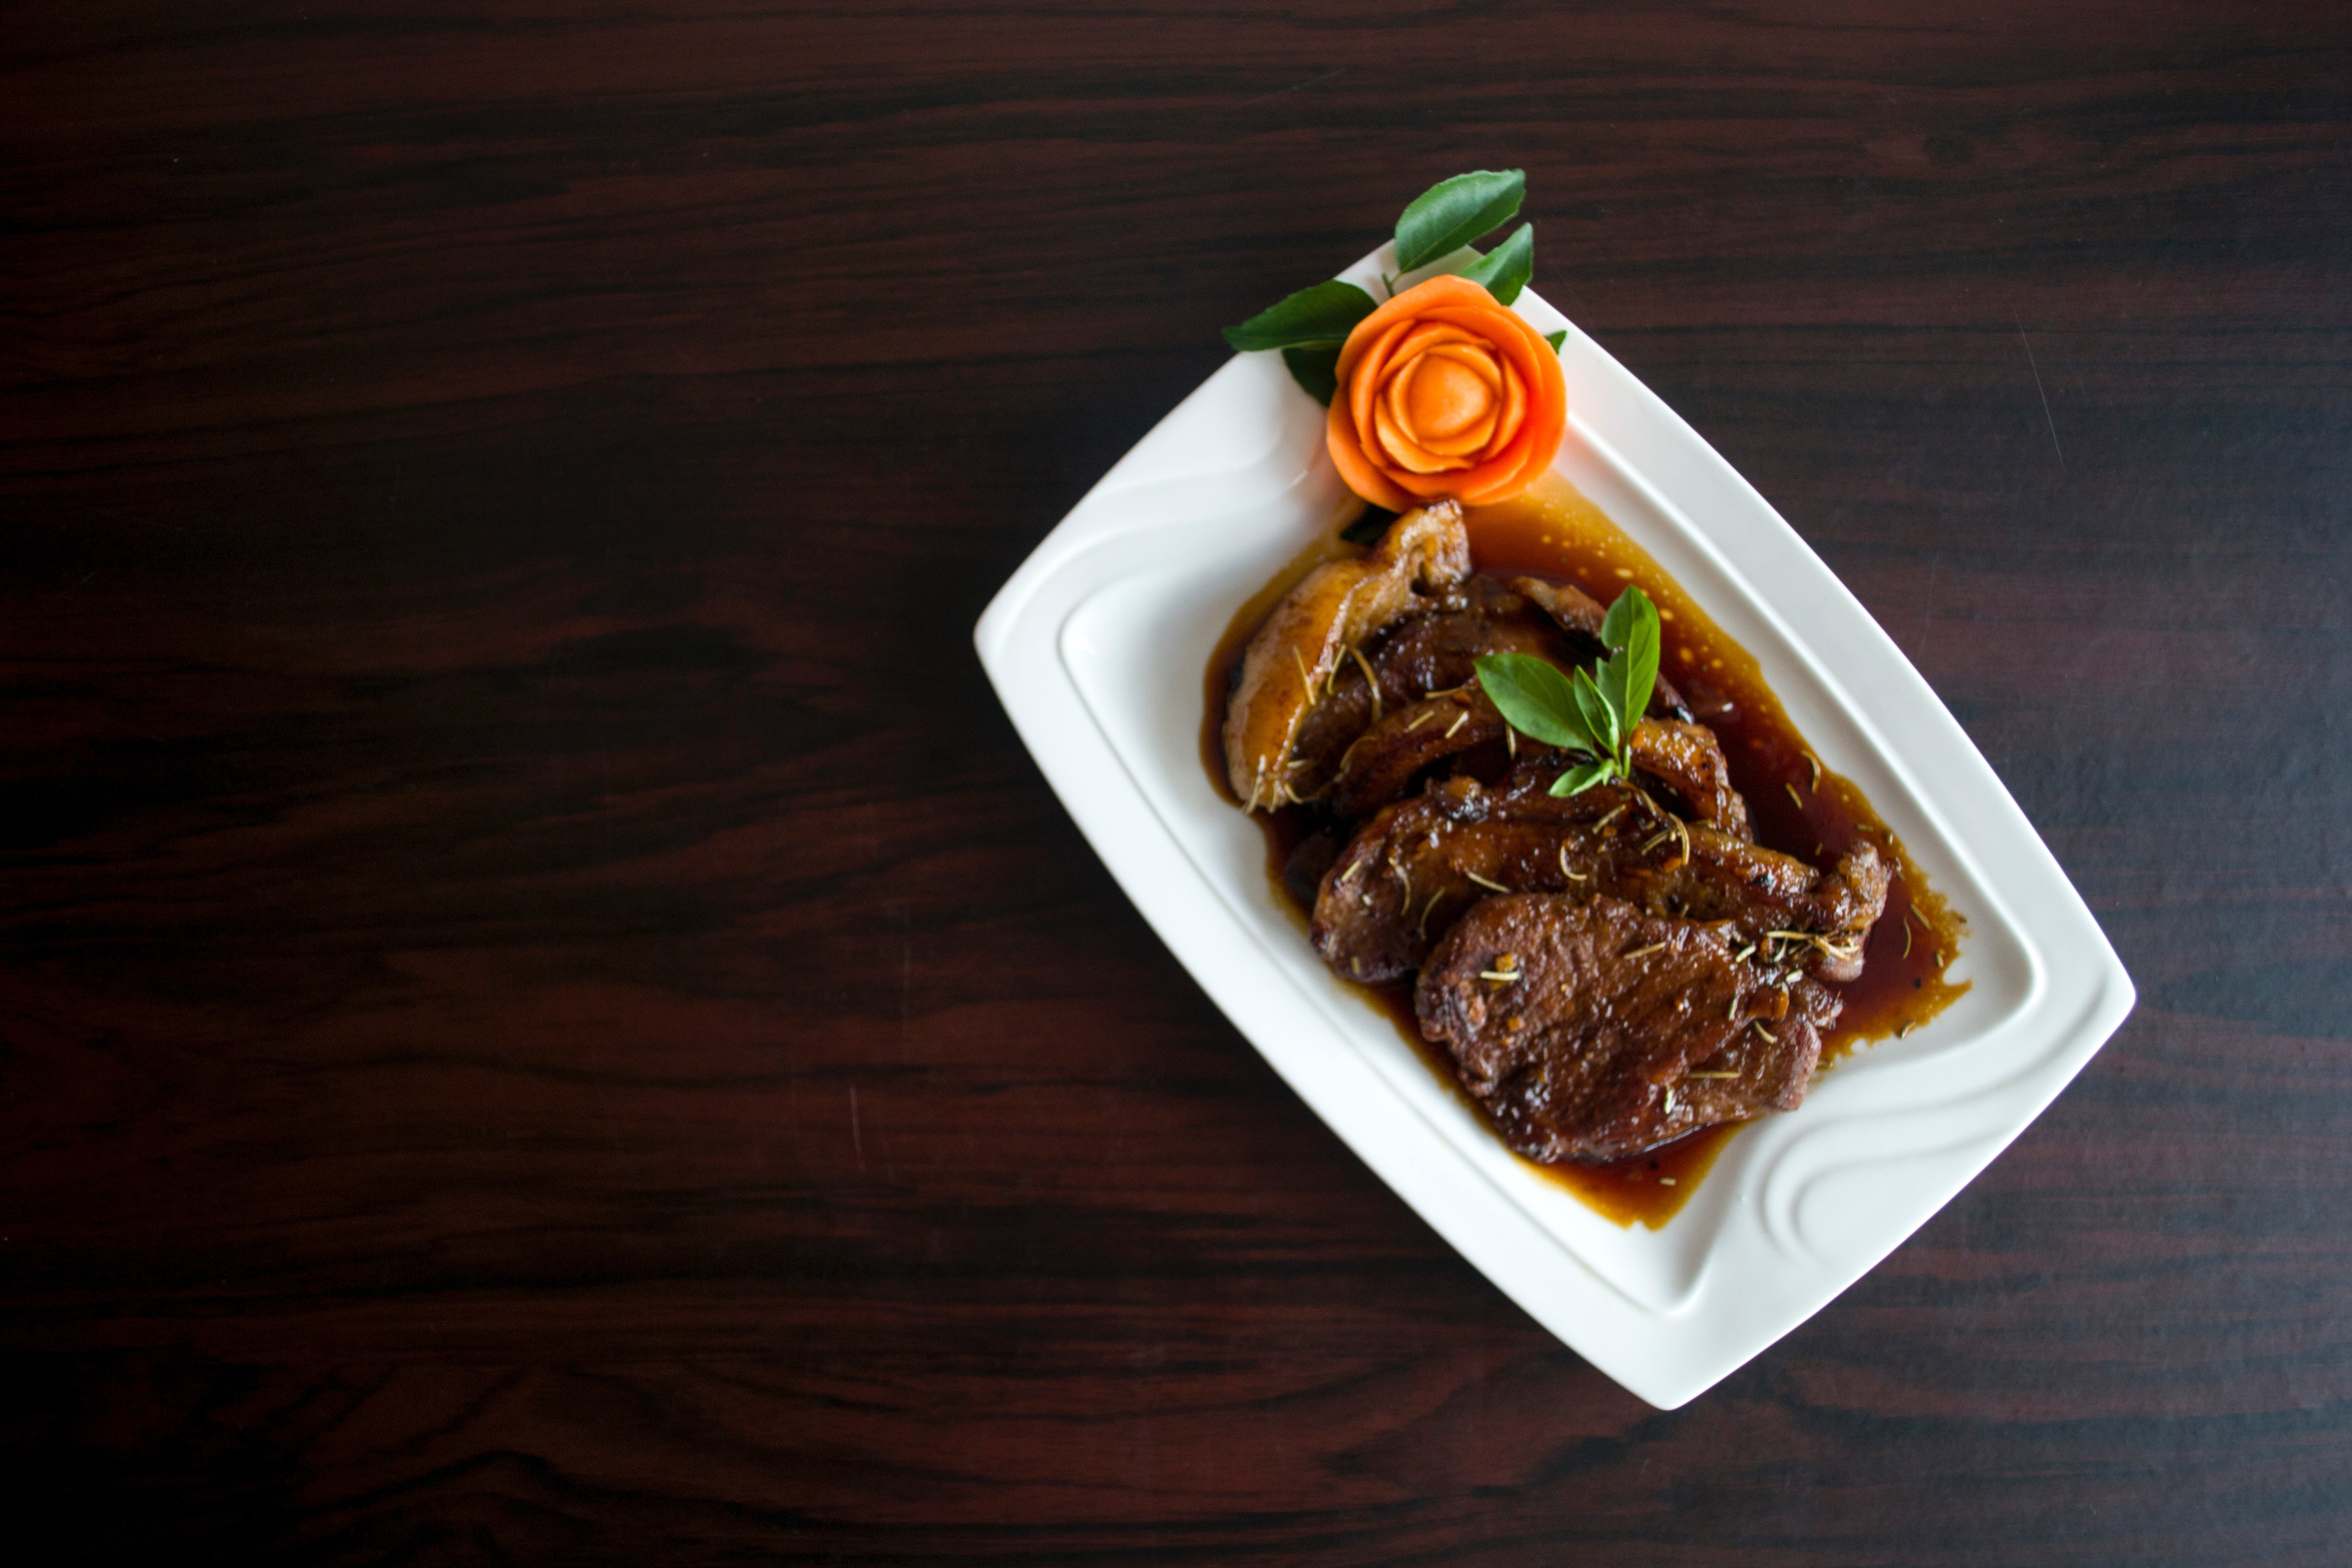 Meat With Sauce Dish on White Ceramic Plate, Meat, Meal, Lunch, Plate, HQ Photo